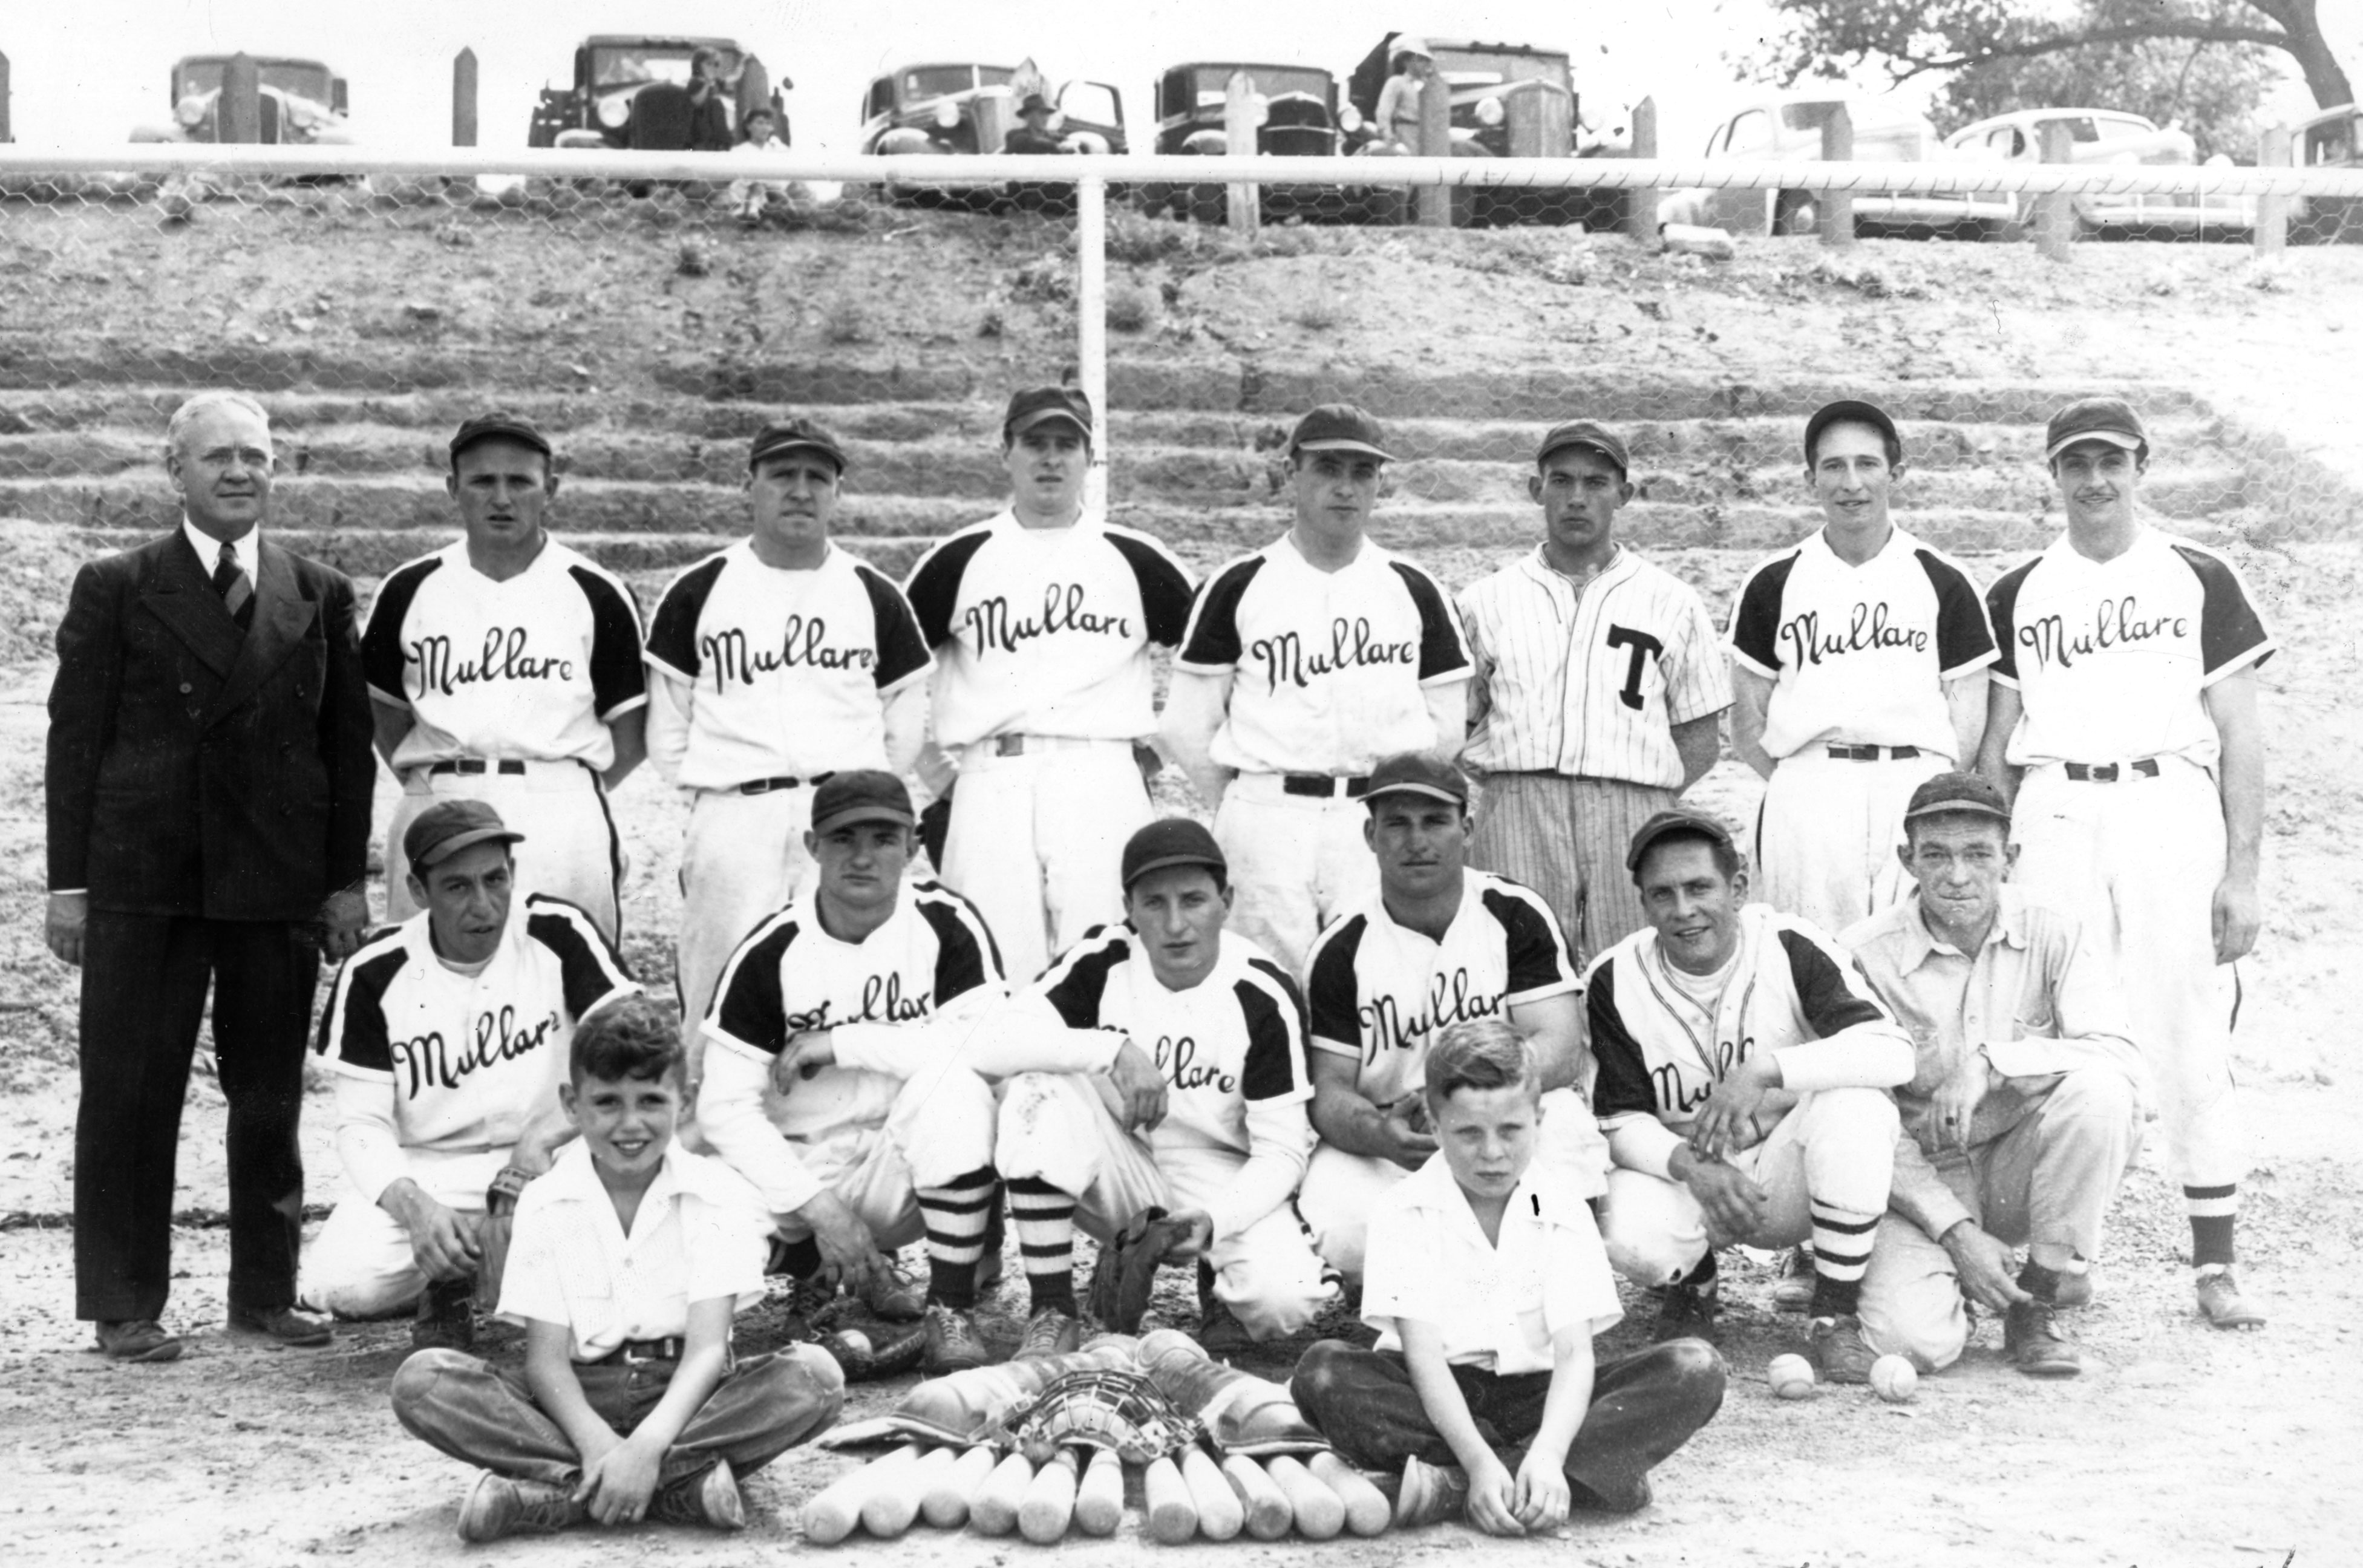 Mullare Funeral Home baseball team, Trinidad, about 1940